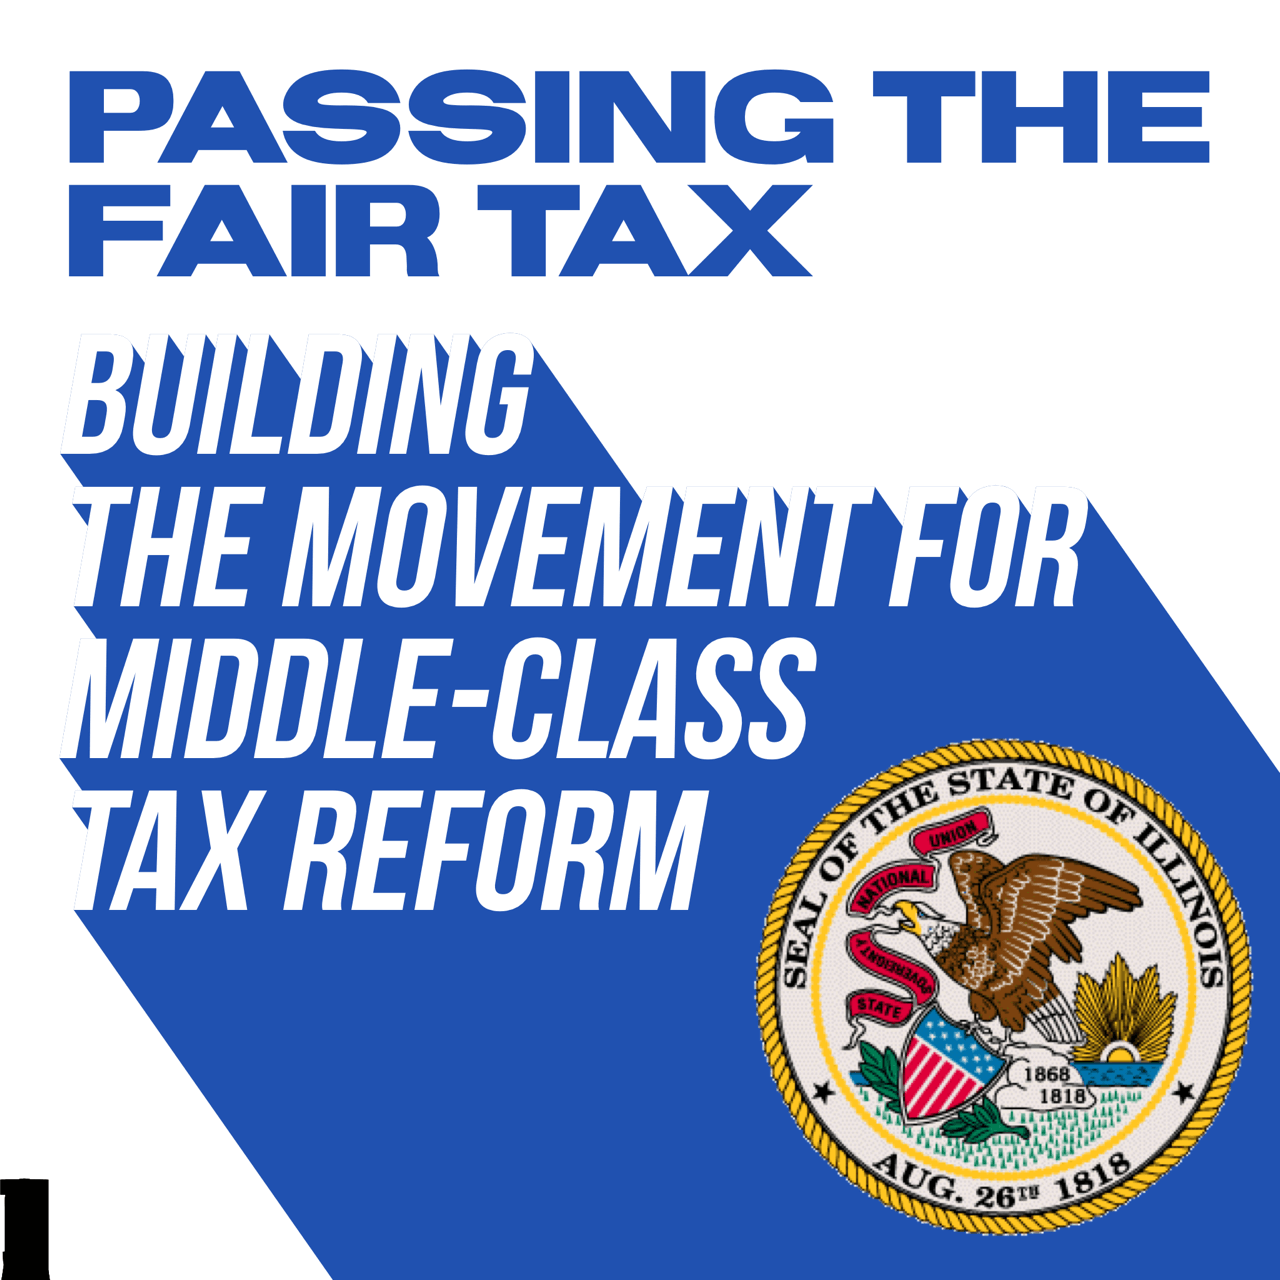 WHAT WILL IT TAKE TO PASS THE GRADUATED INCOME TAX